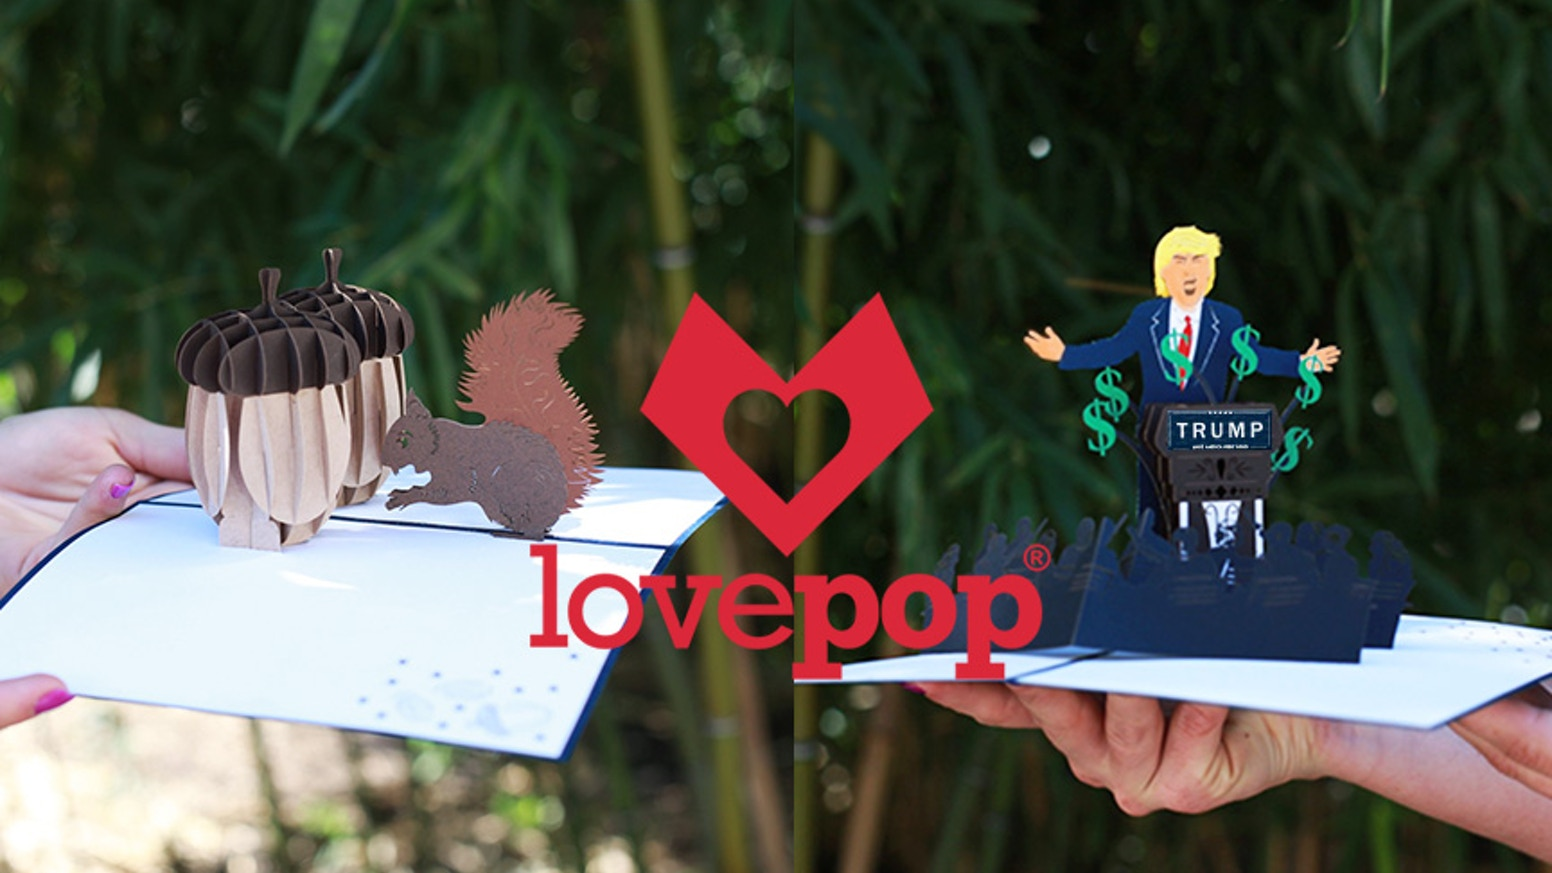 Lovepop 3d Pop Up Greeting Cards Donald Trump Deez Nuts By Wombi